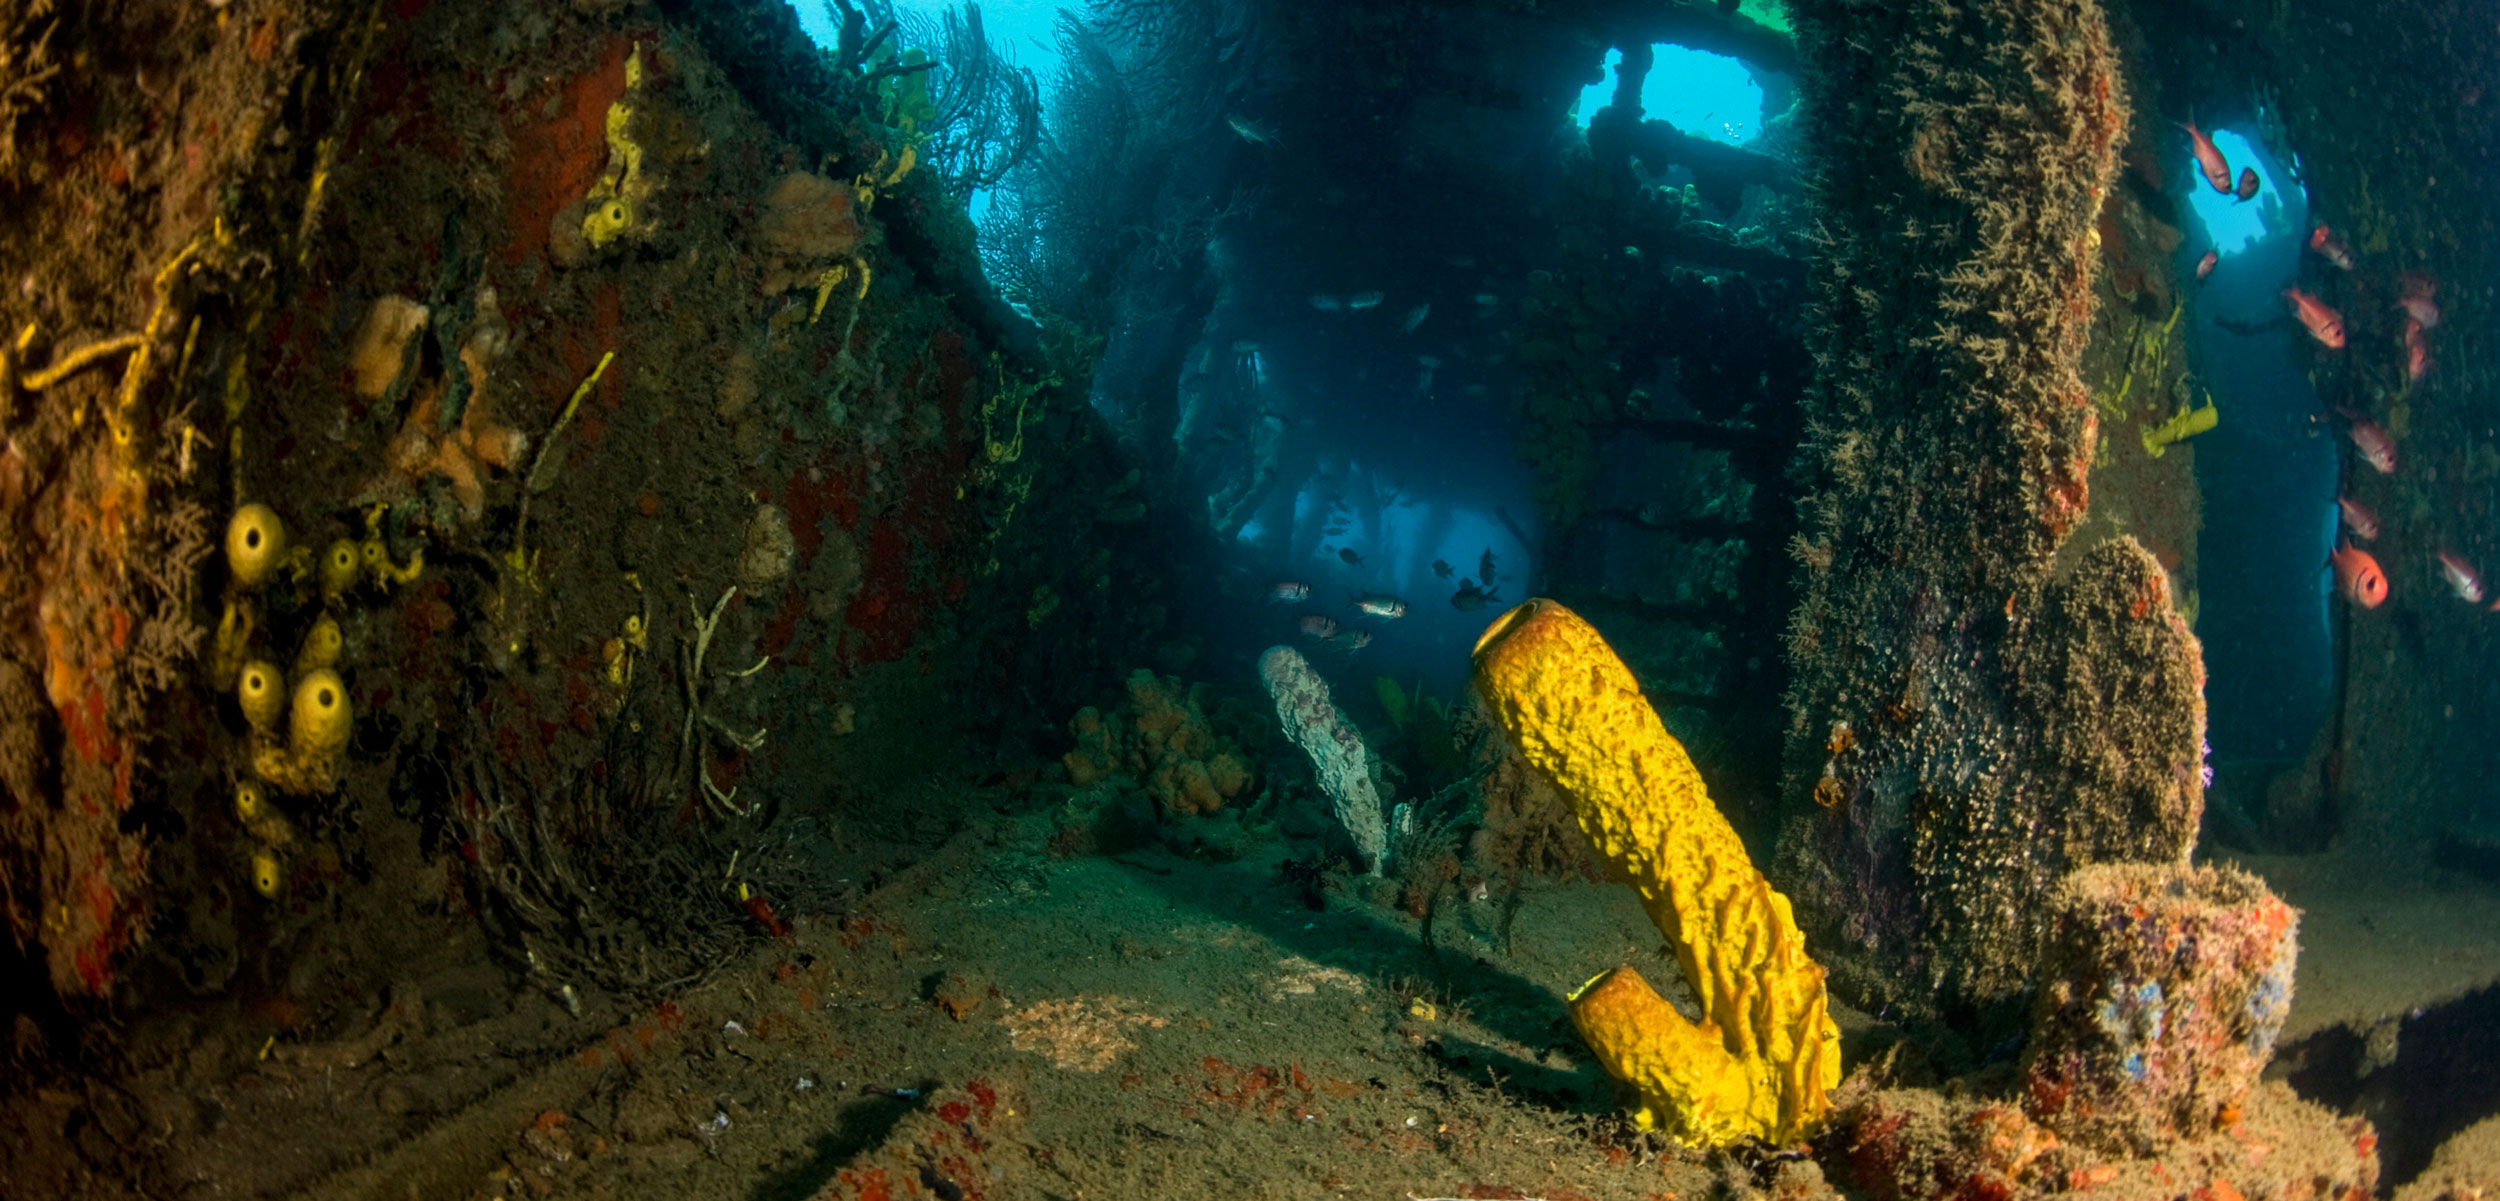 sea life growing on sunken ship